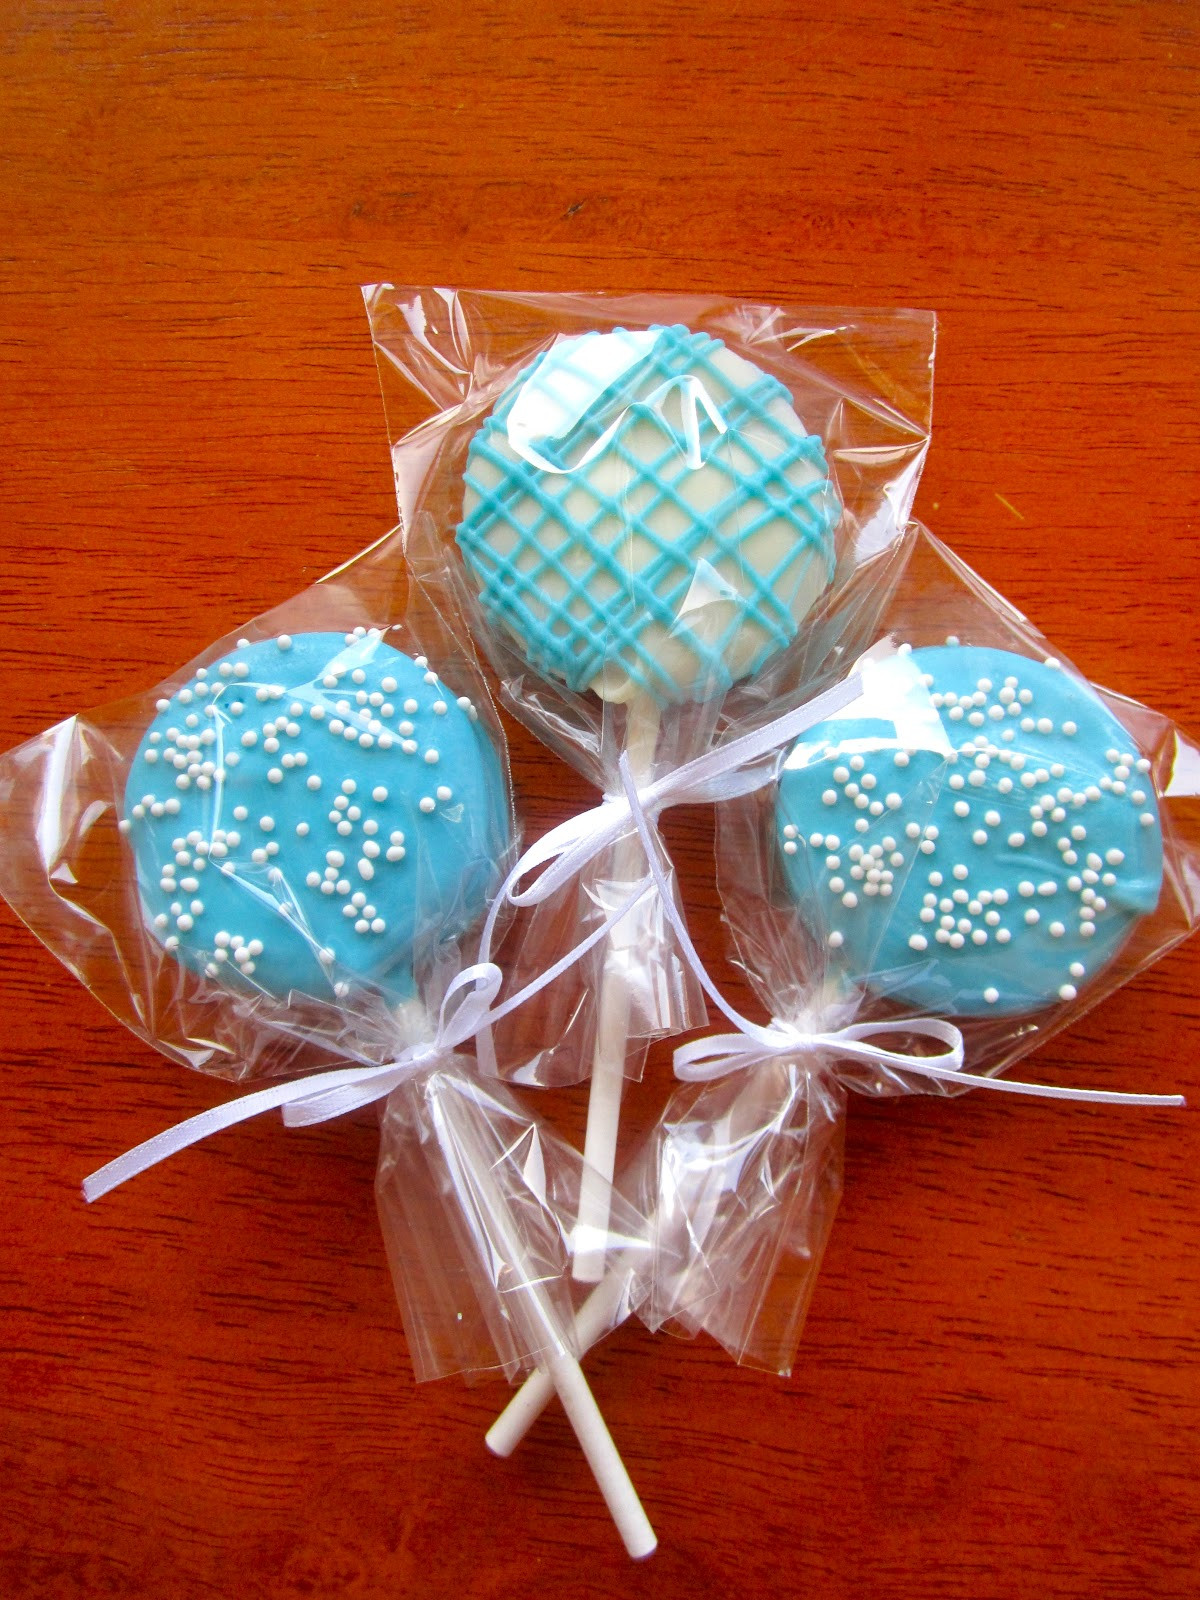 Best ideas about Baby Shower Favors DIY . Save or Pin 25 DIY Baby Shower Favors Now.